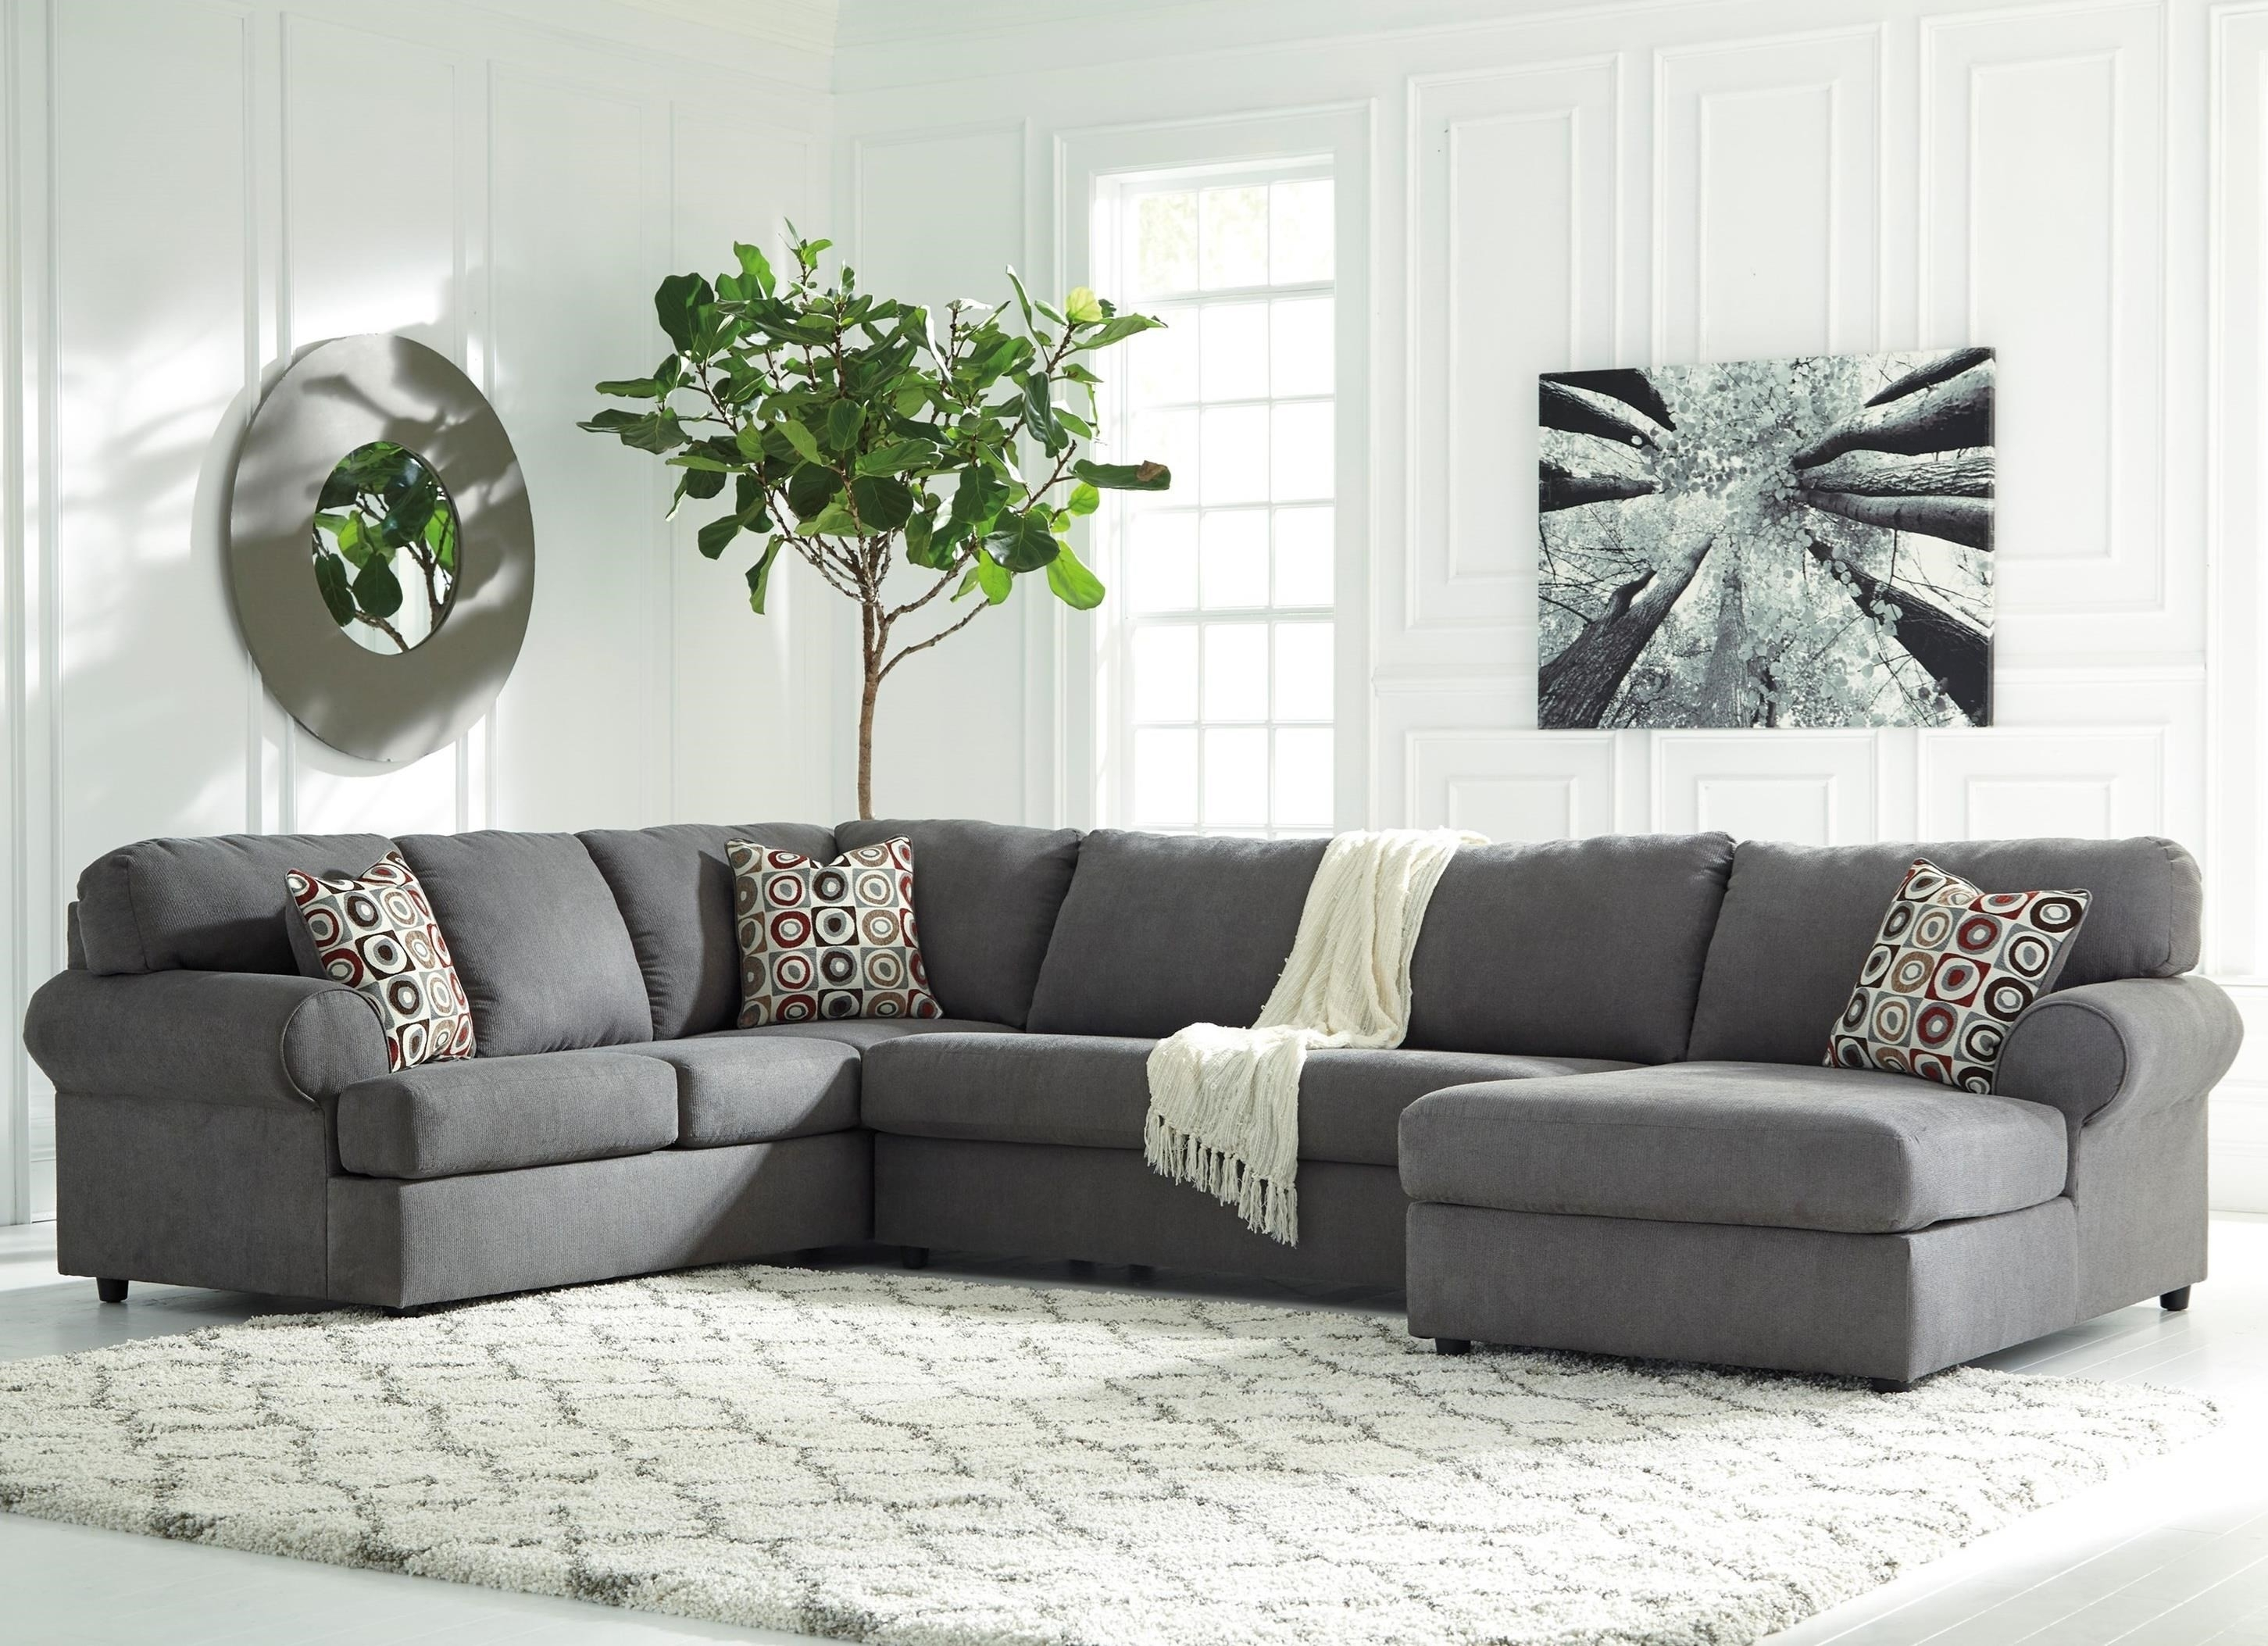 3 Piece Sectional With Chaise Meyer W Raf Living Spaces 87980 2 Jpg Inside Meyer 3 Piece Sectionals With Laf Chaise (Image 2 of 25)